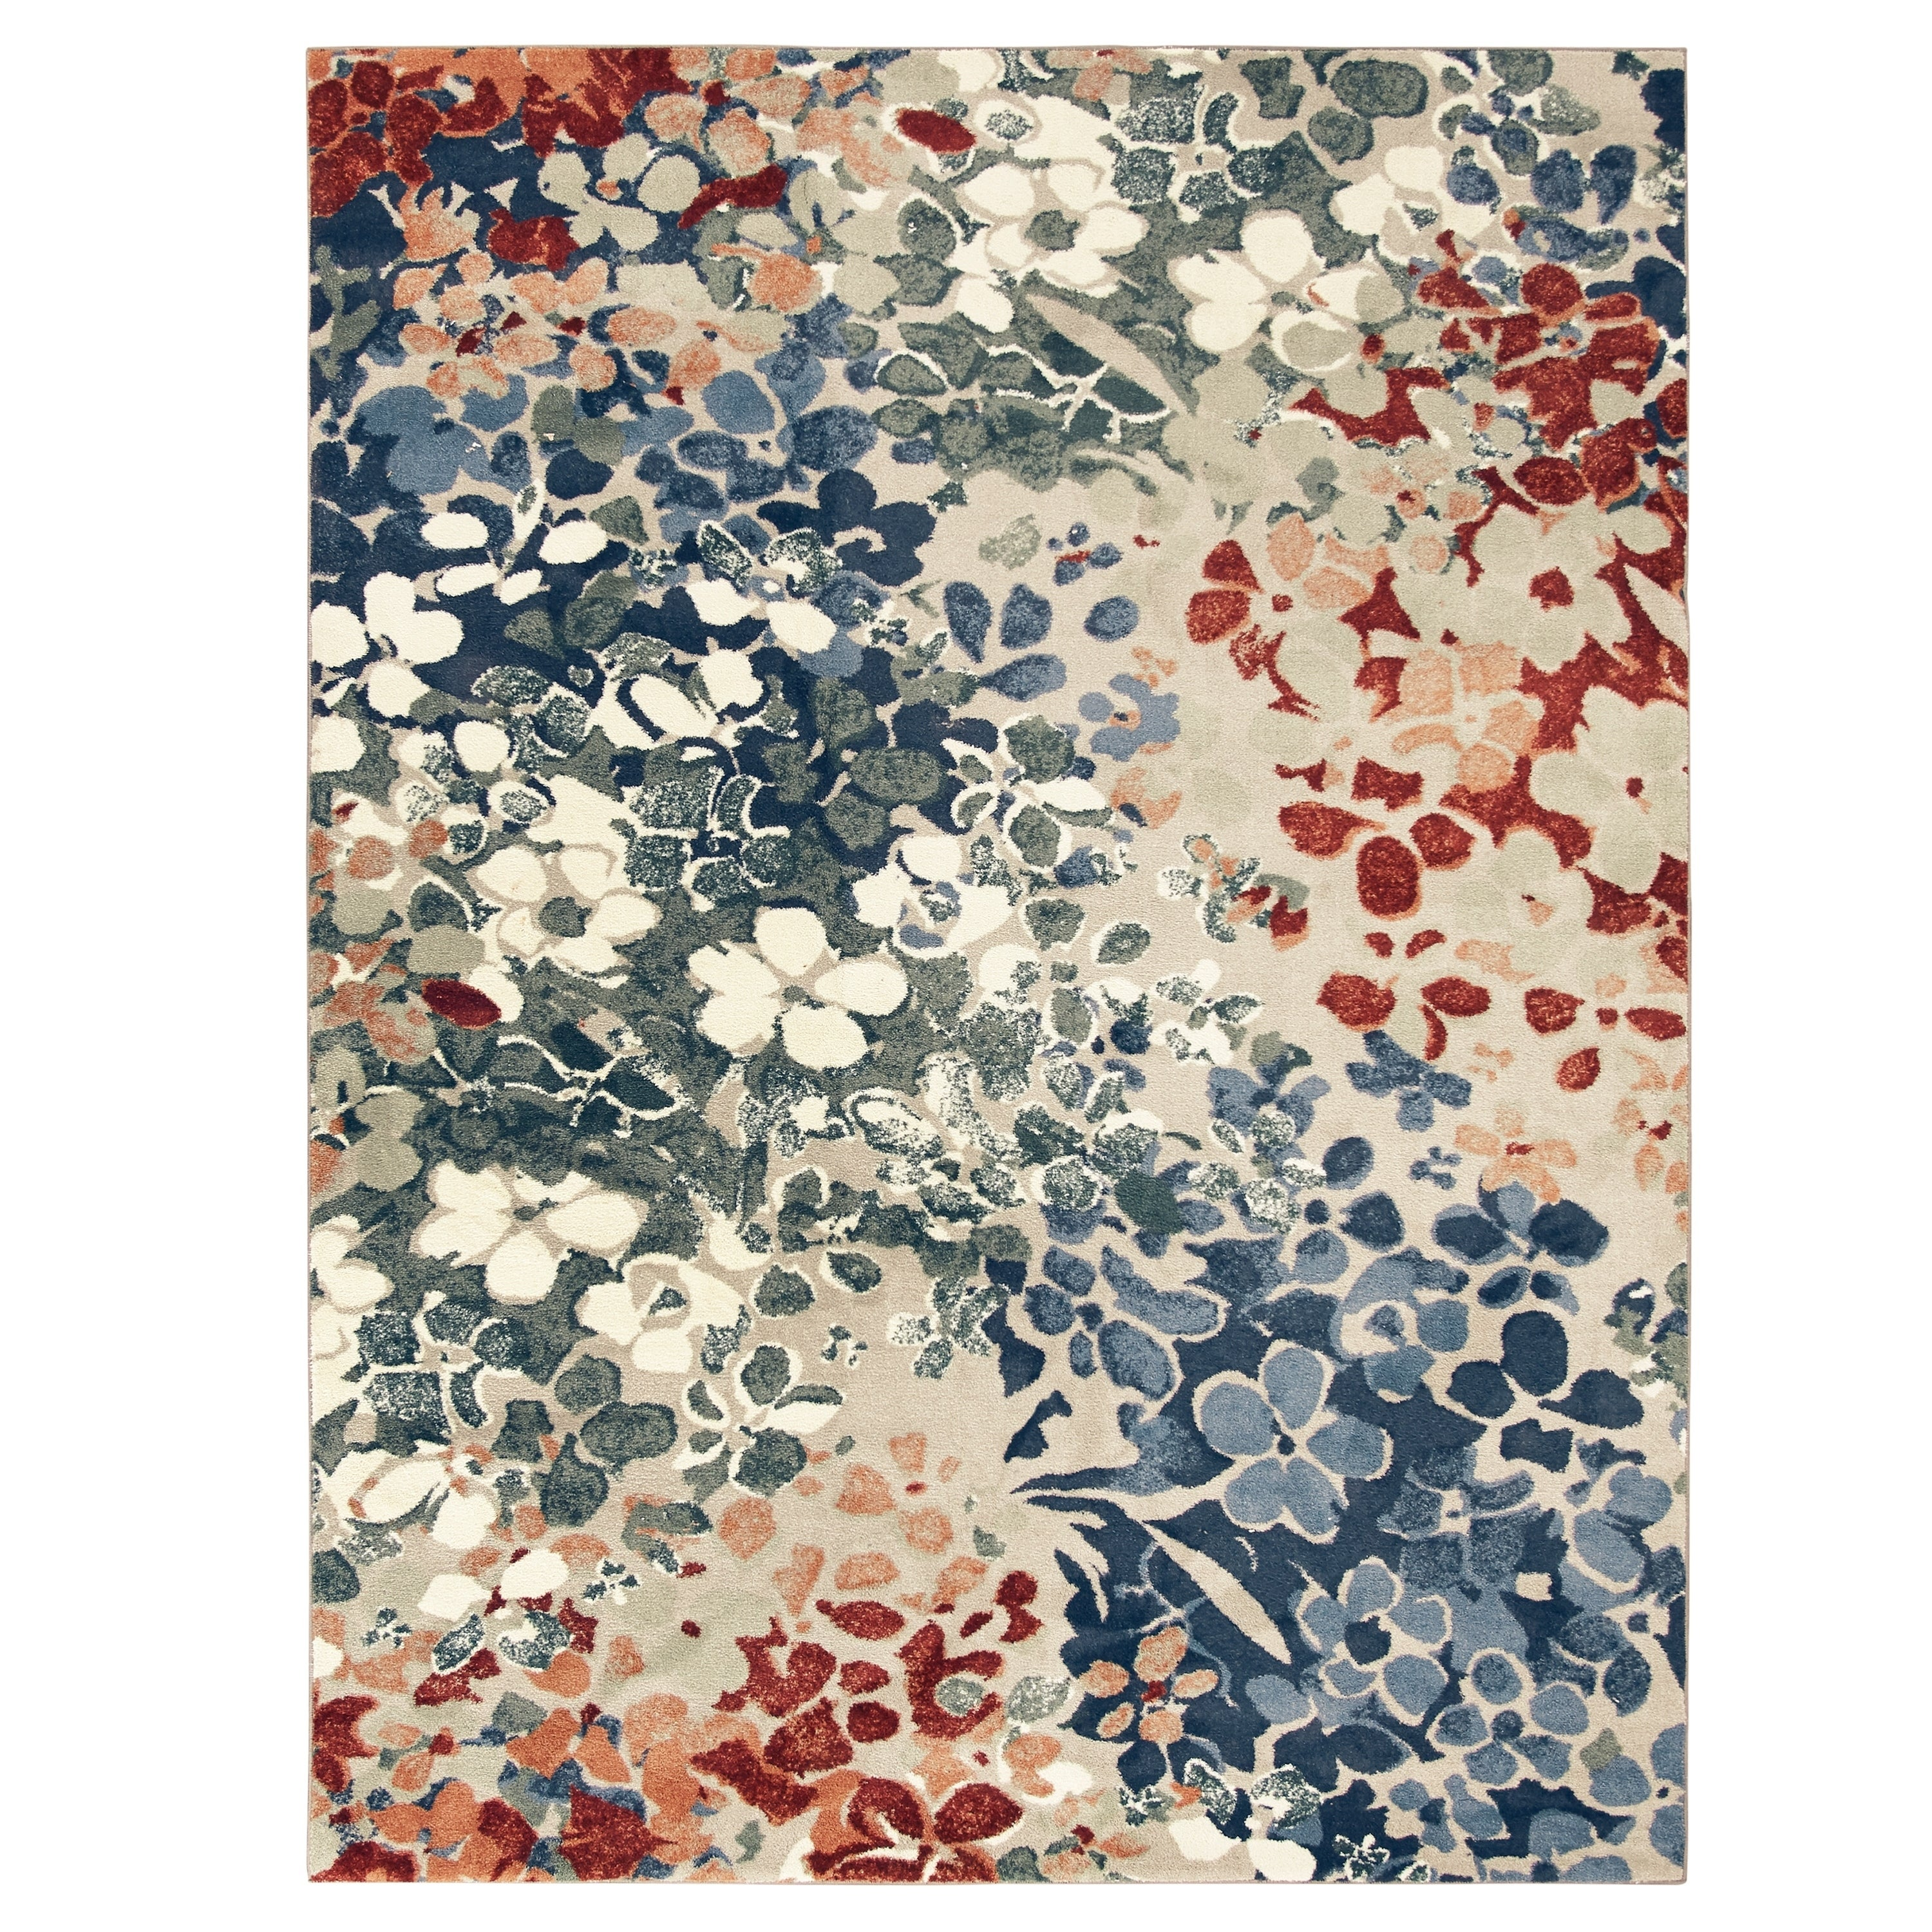 18x210 Mohawk Home Aqua Blue Aurora Radiance Abstract Floral Area Rug